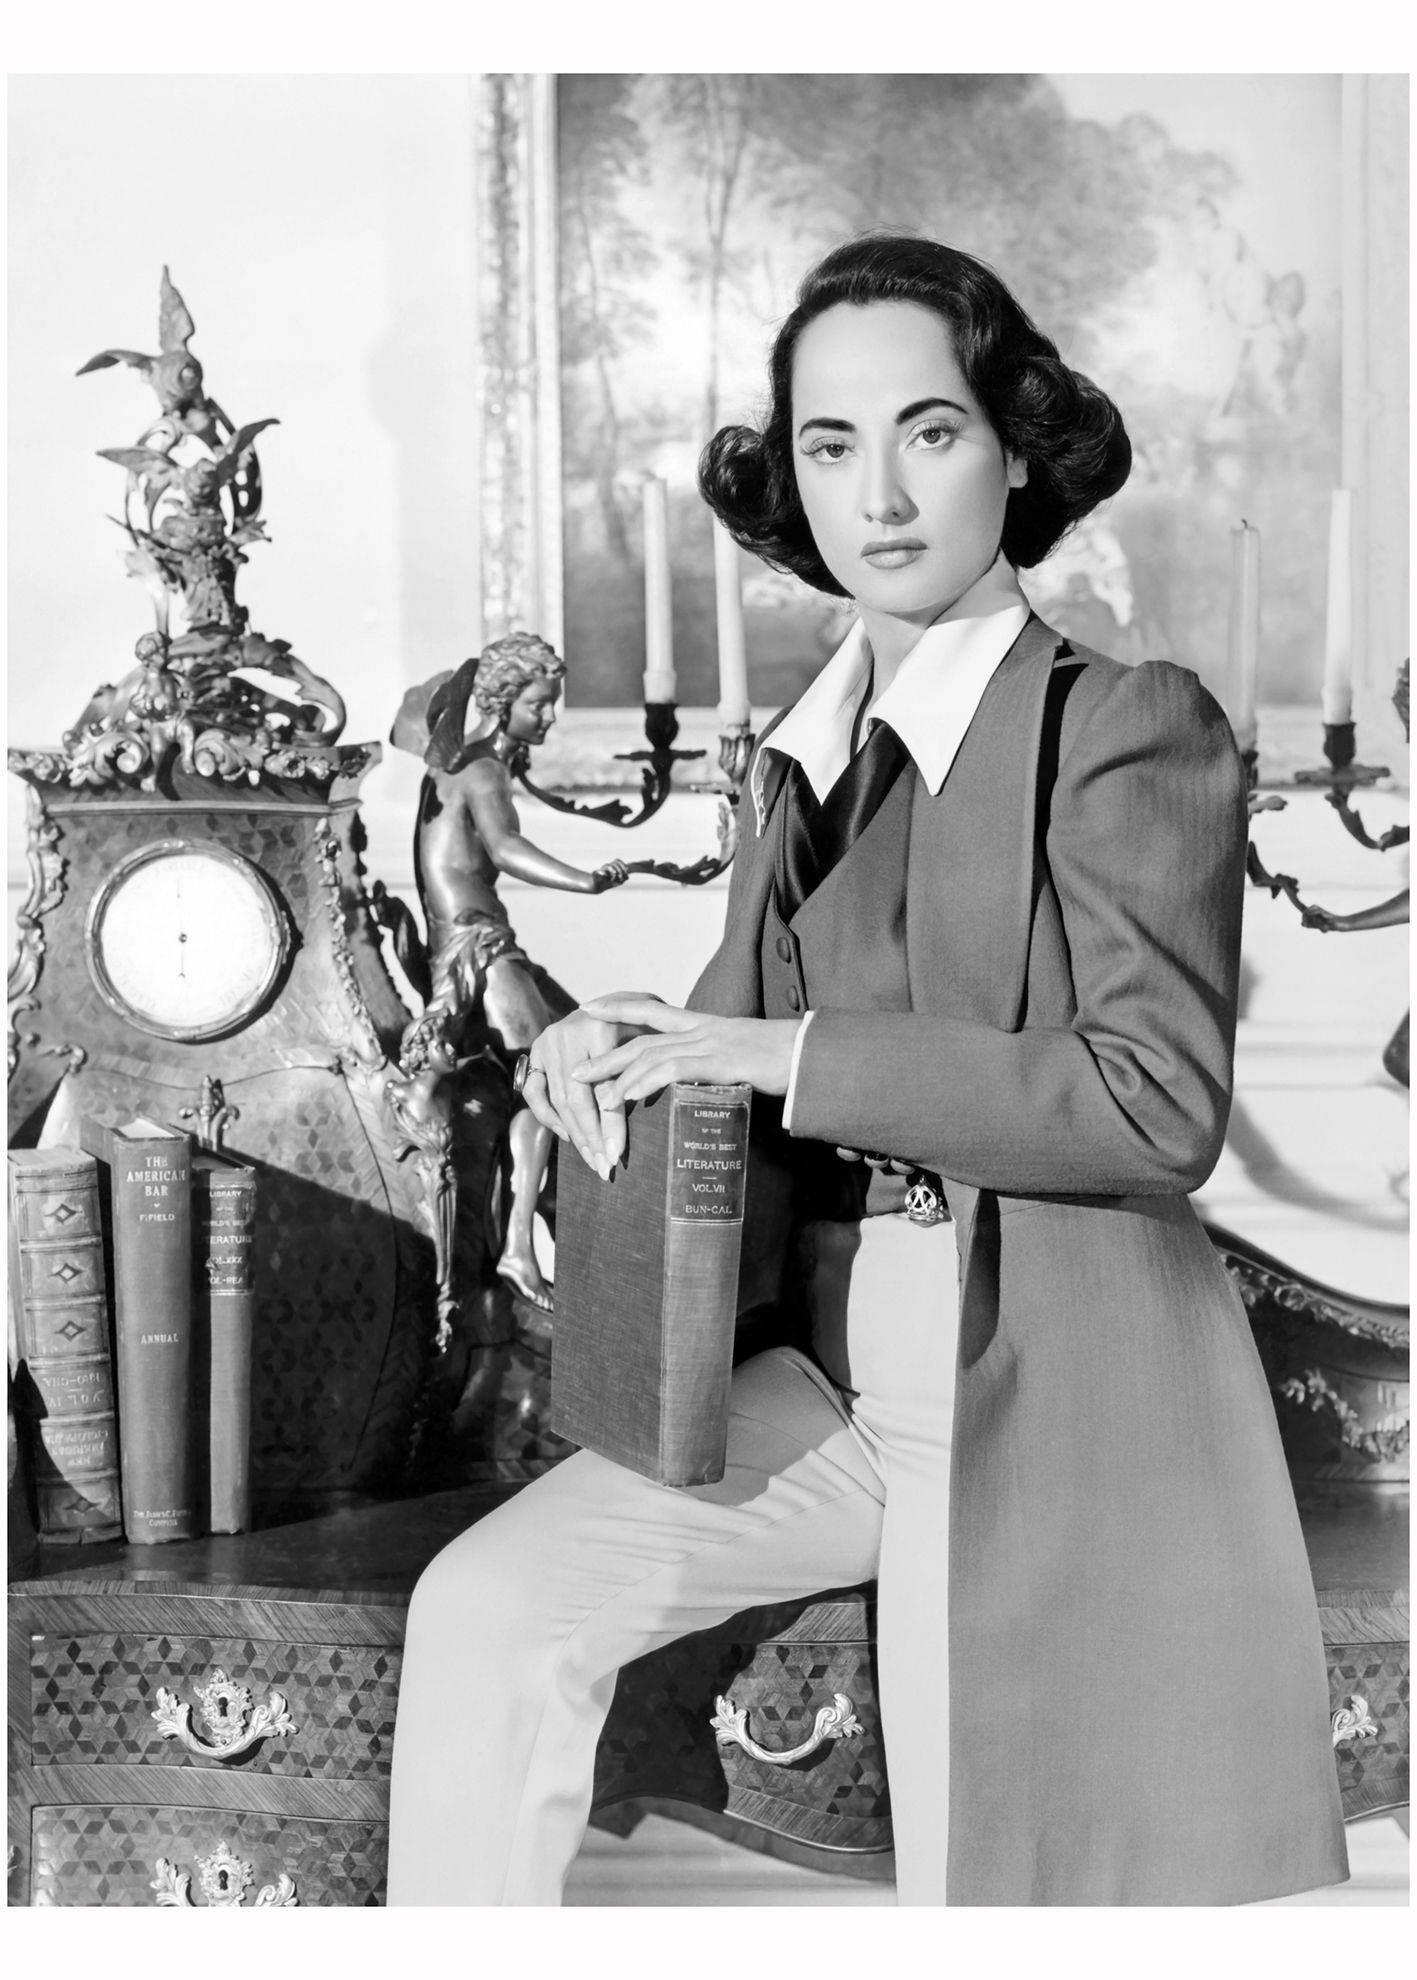 Merle Oberon (A Song to Remember) 1945